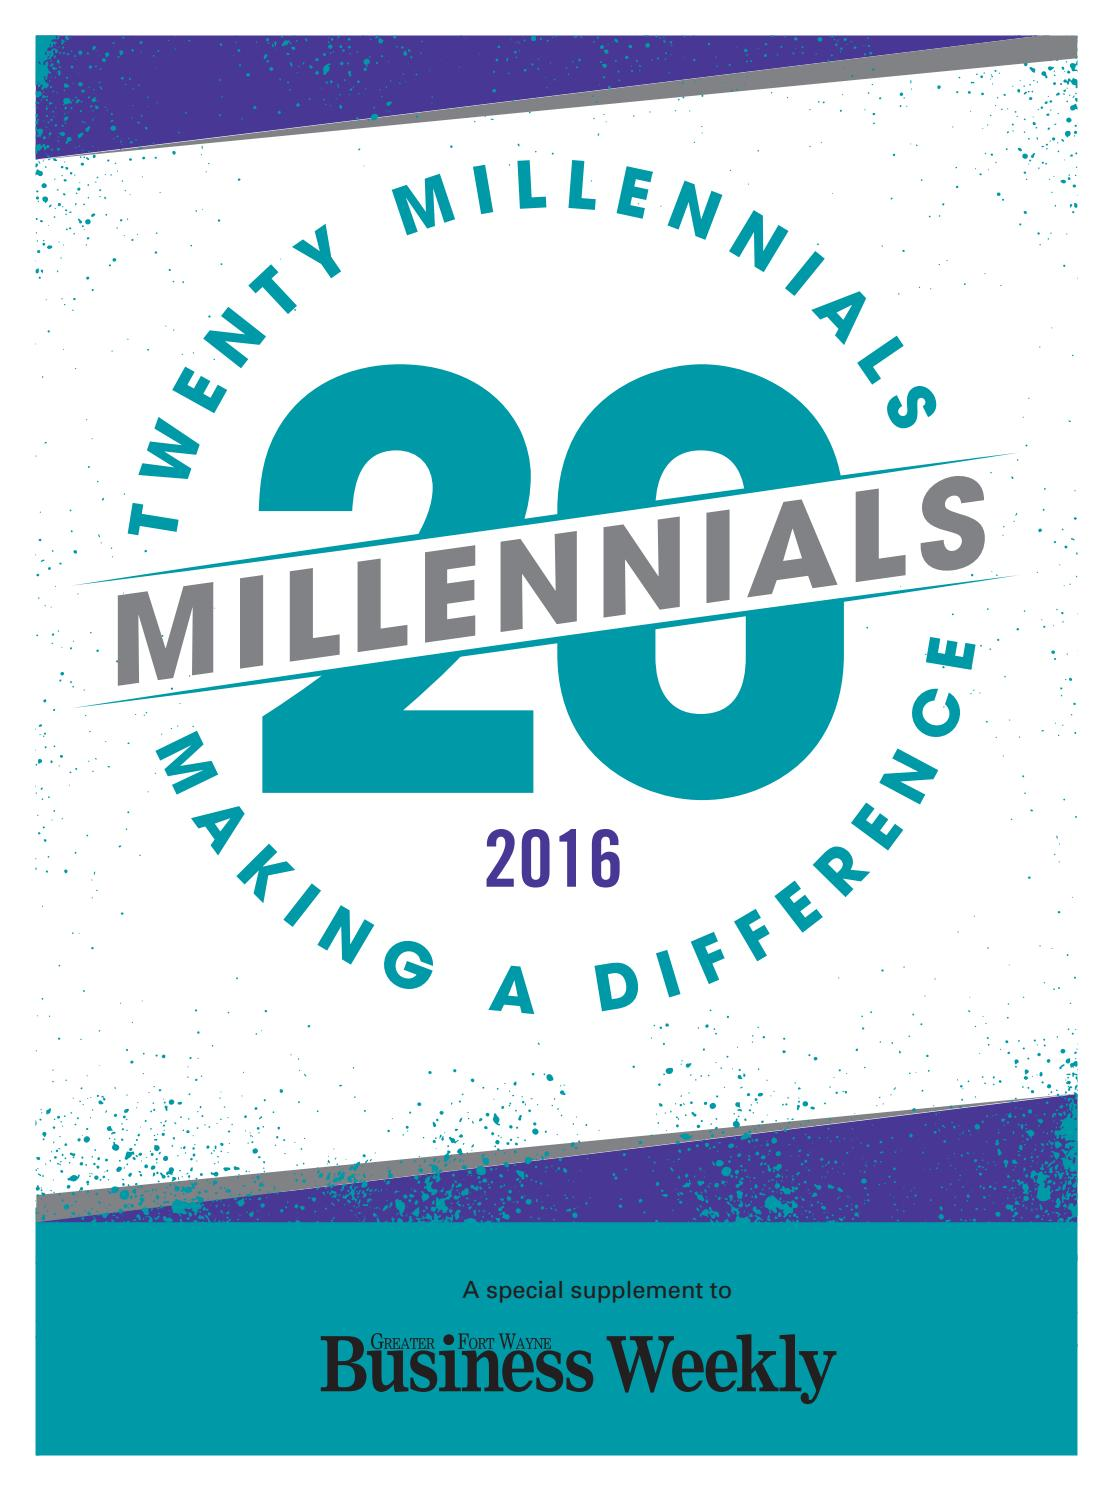 20 millennials making a difference by kpc media group issuu